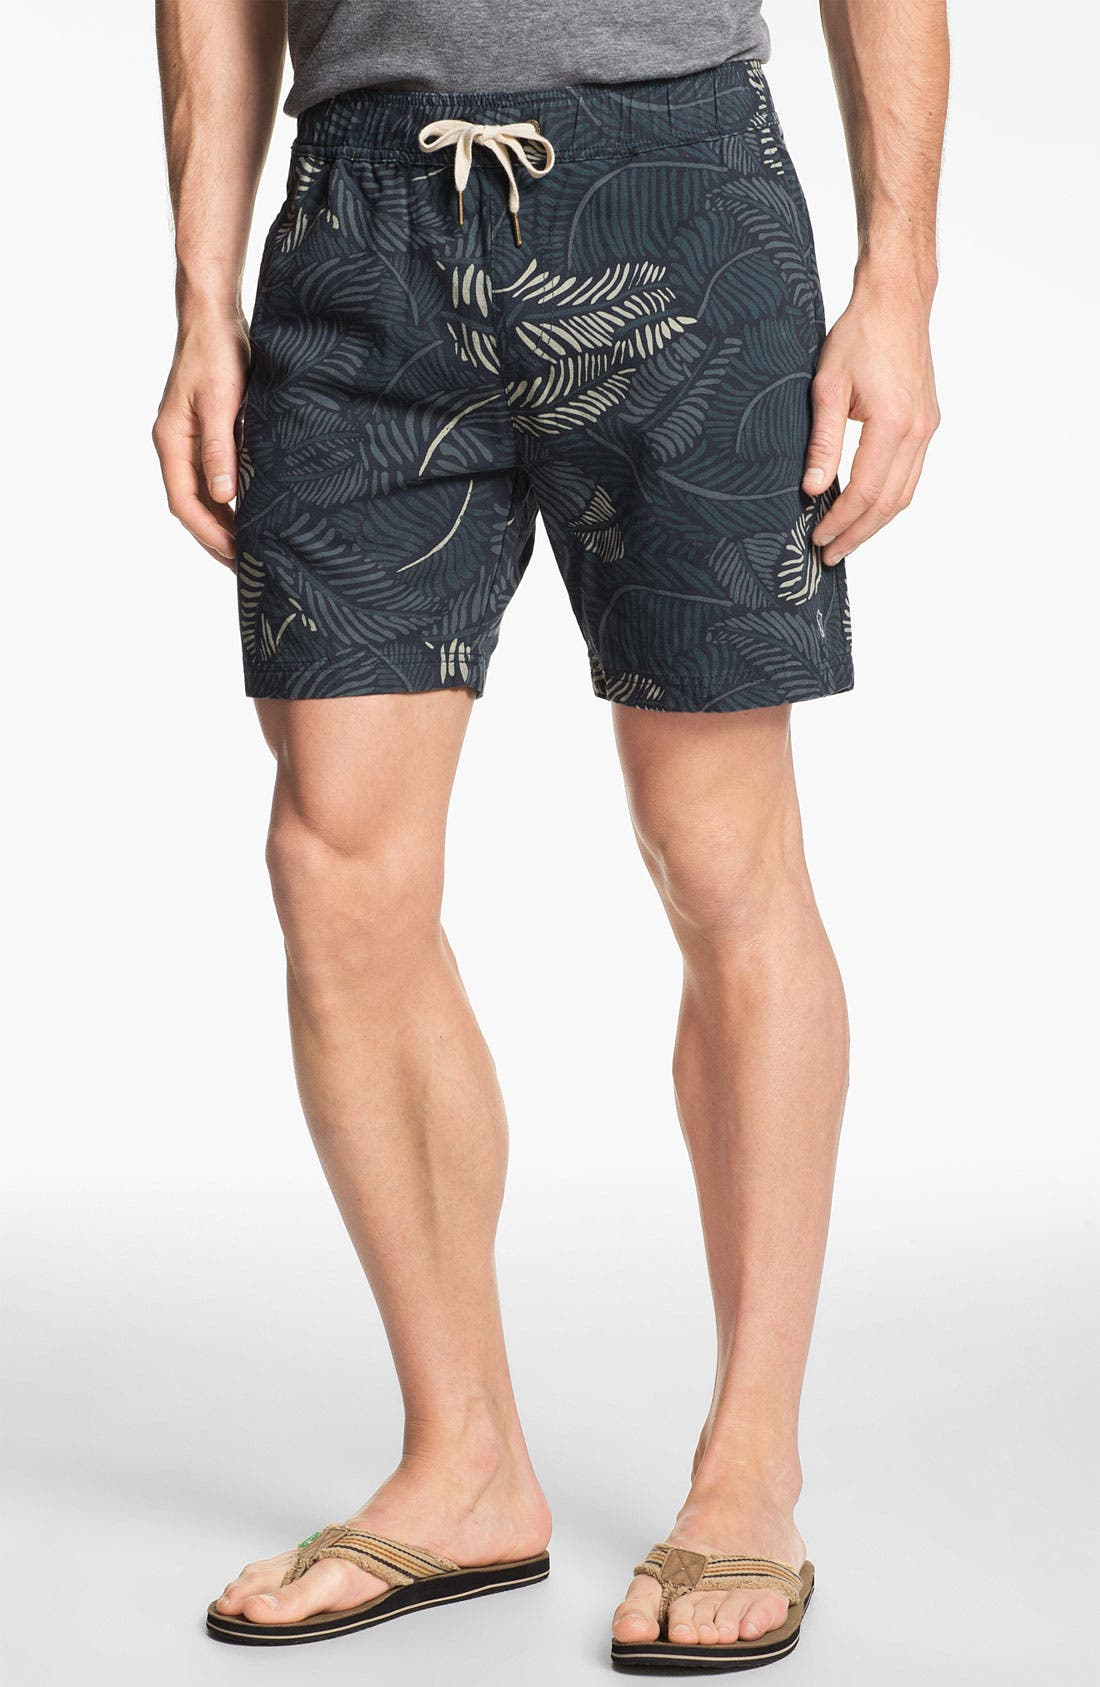 Alternate Image 1 Selected - Zanerobe 'Poleho' Print Pattern Shorts